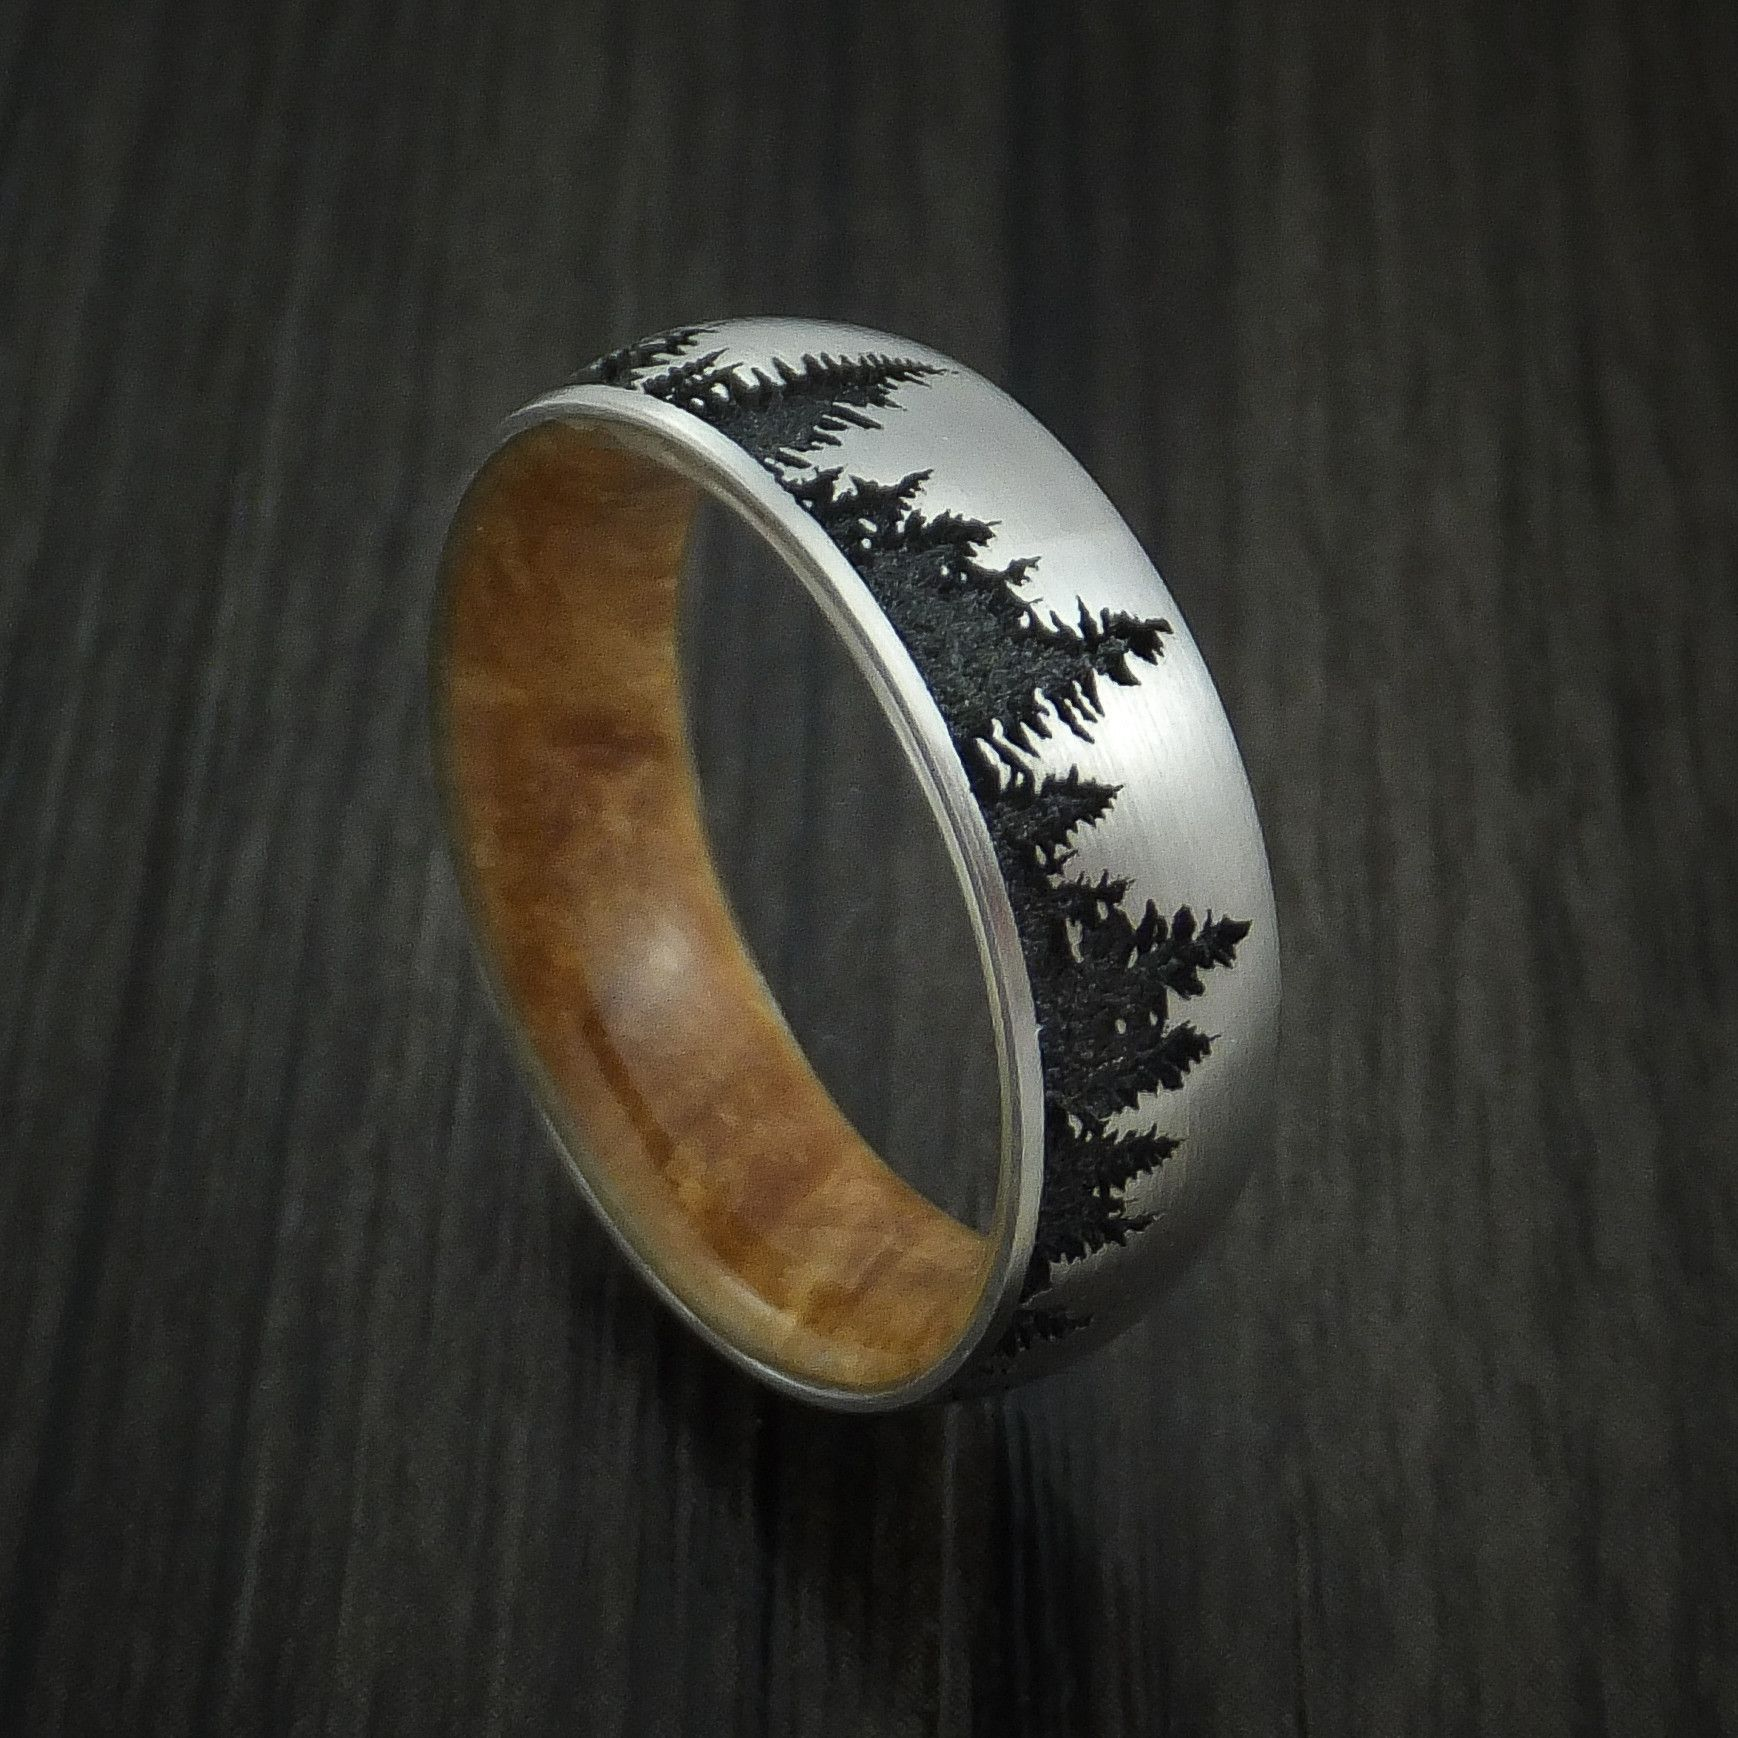 pin designs elder burl jewellery hardwood maple box design ring sleeve with and wedding titanium custom tree band made